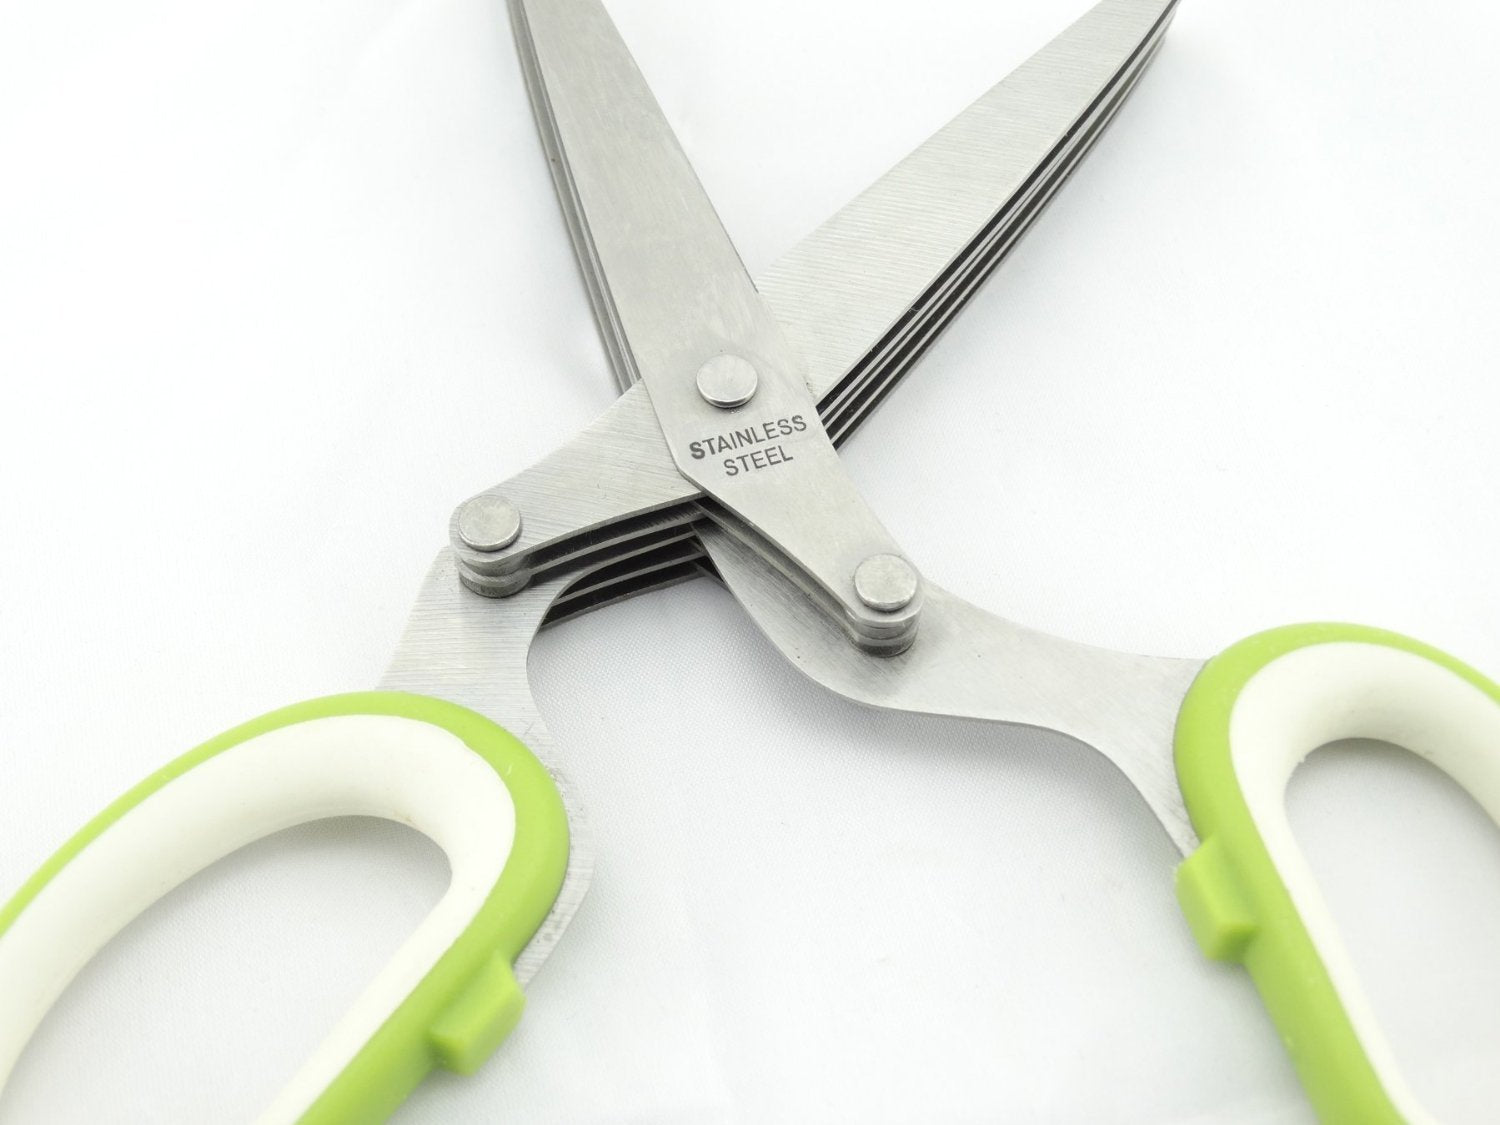 ICO 5 Blade Herb Scissors